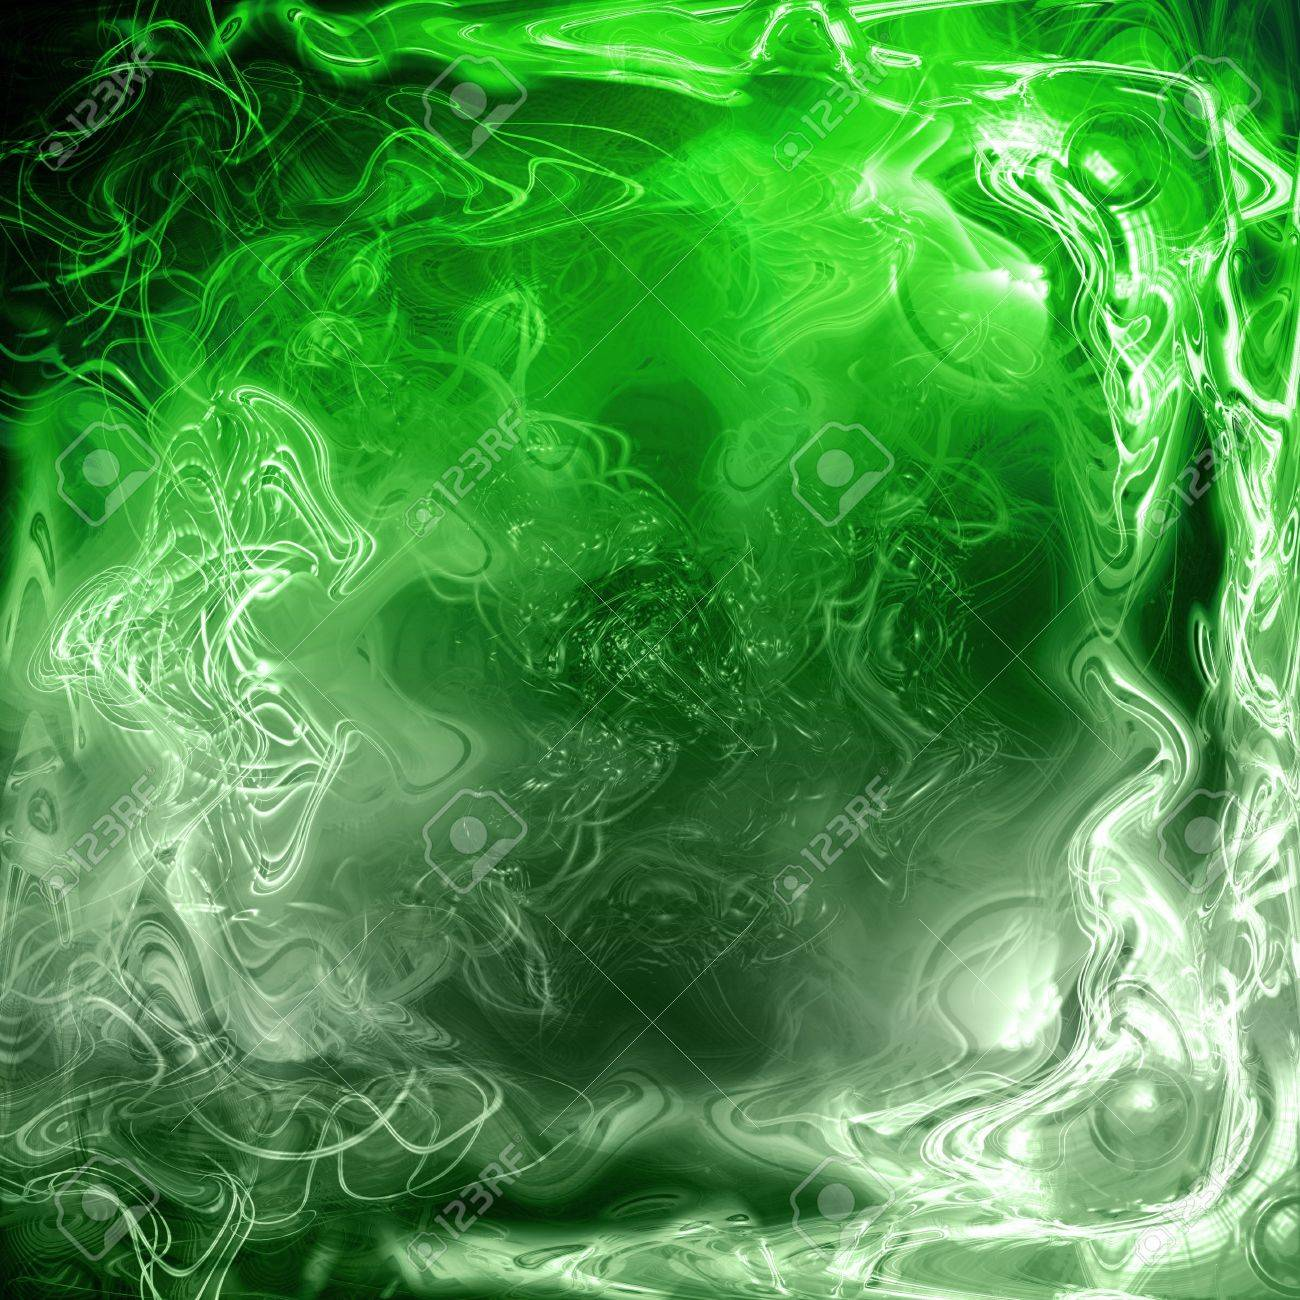 A Cool 3d Background A Green Fluid Abstract Background